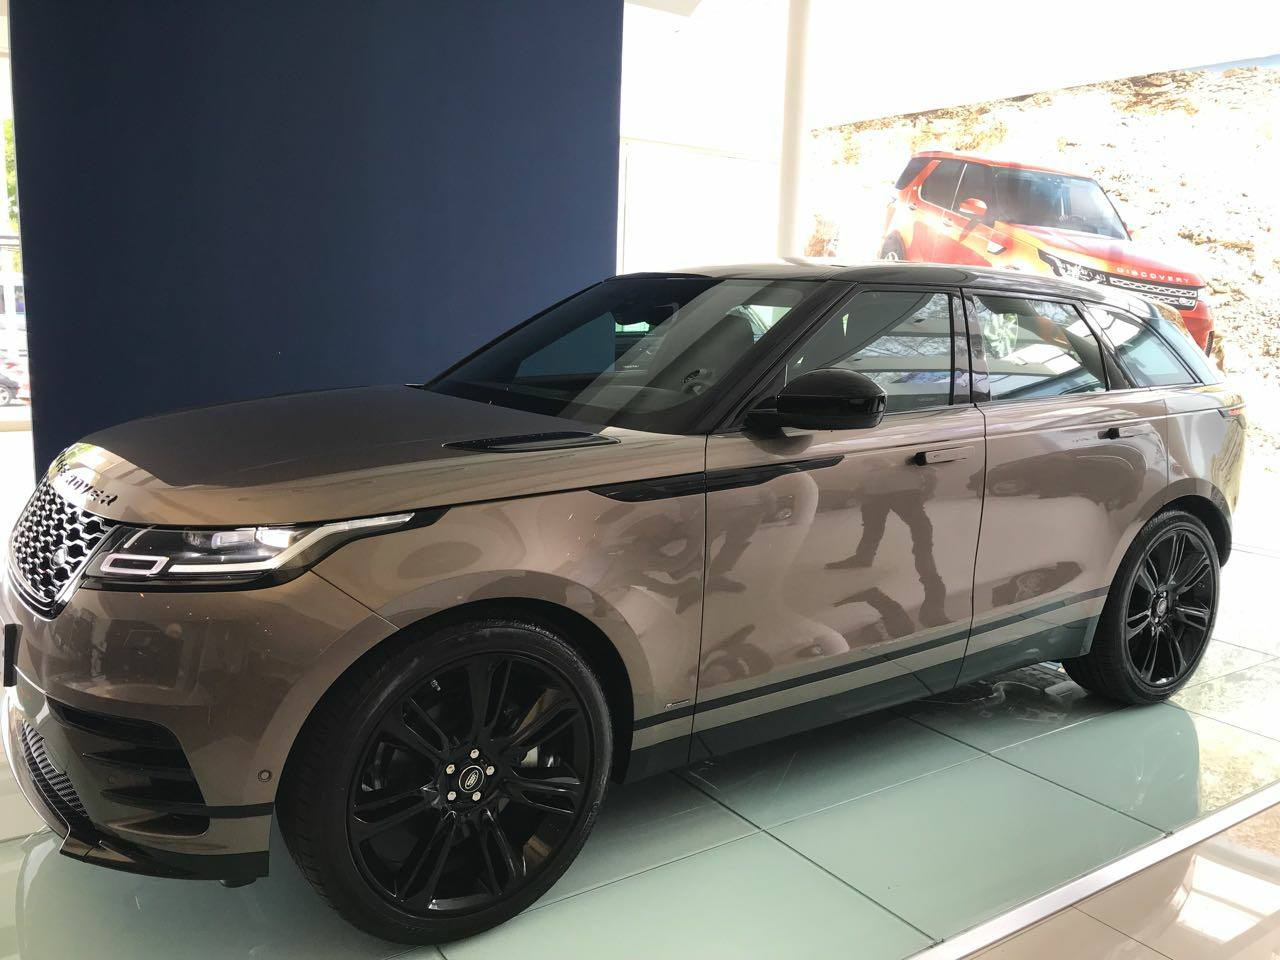 range rover velar fotos e v deo do suv no brasil pre os car blog br. Black Bedroom Furniture Sets. Home Design Ideas